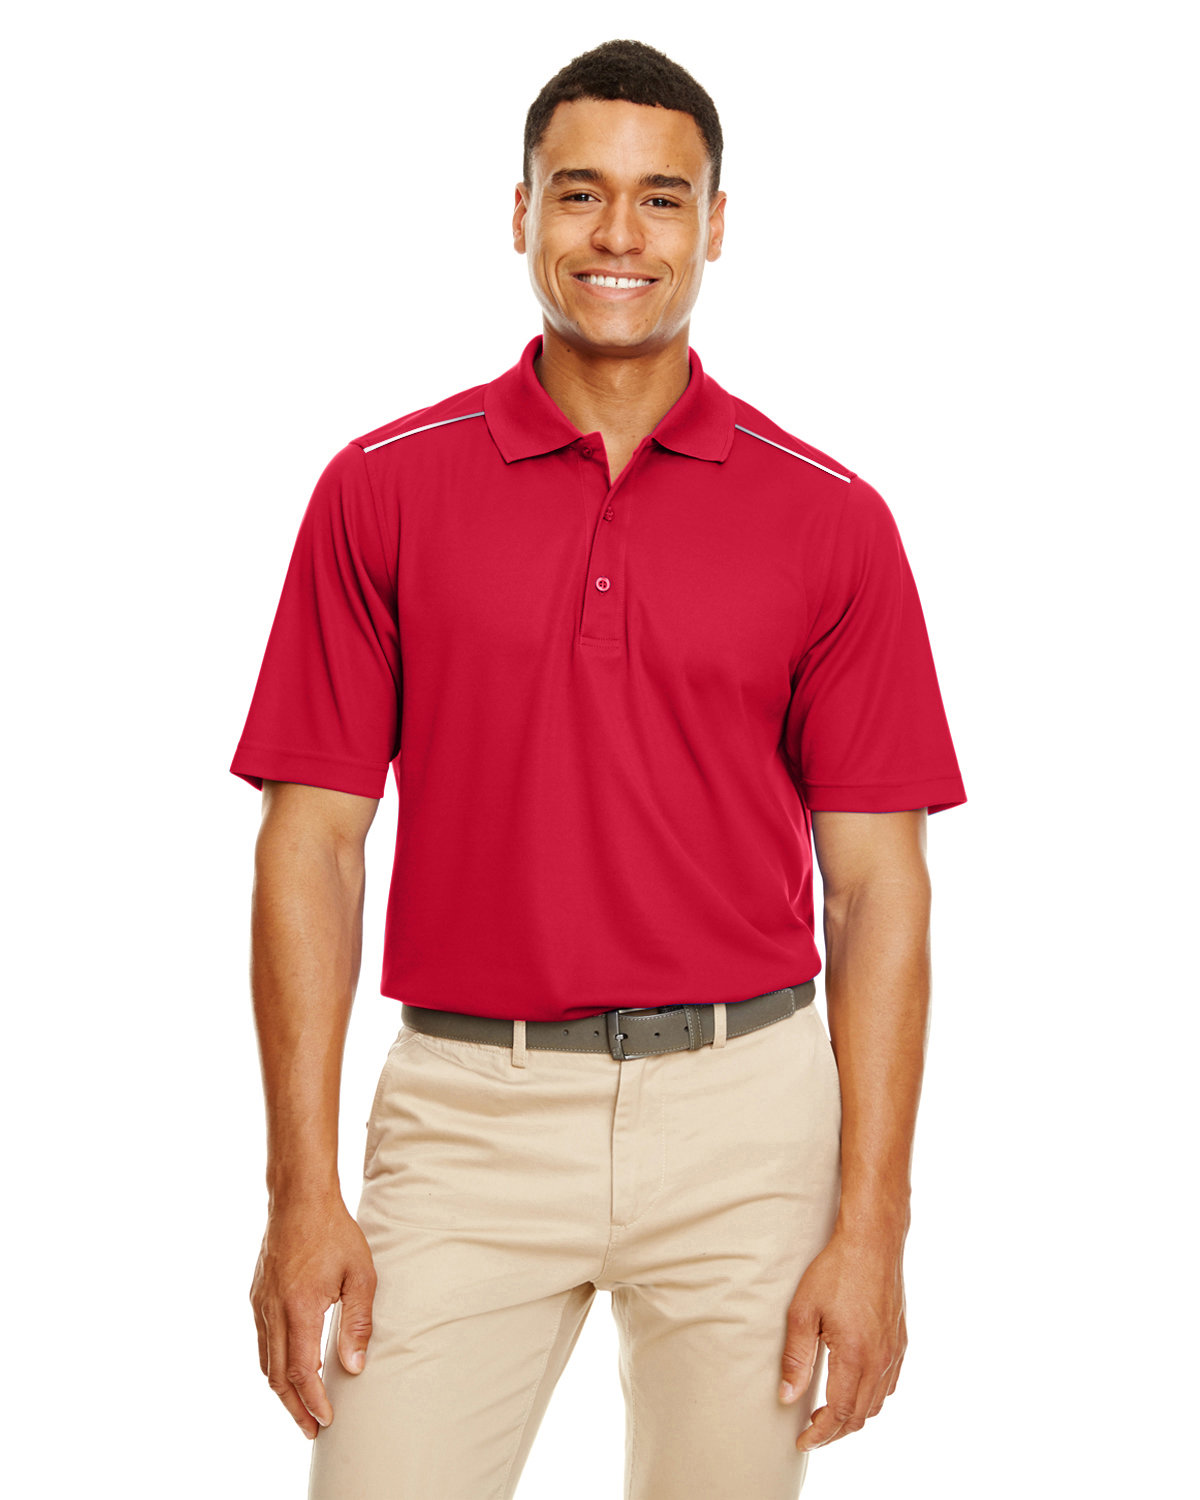 Core 365 Men's Radiant Performance Piqué Polo withReflective Piping CLASSIC RED